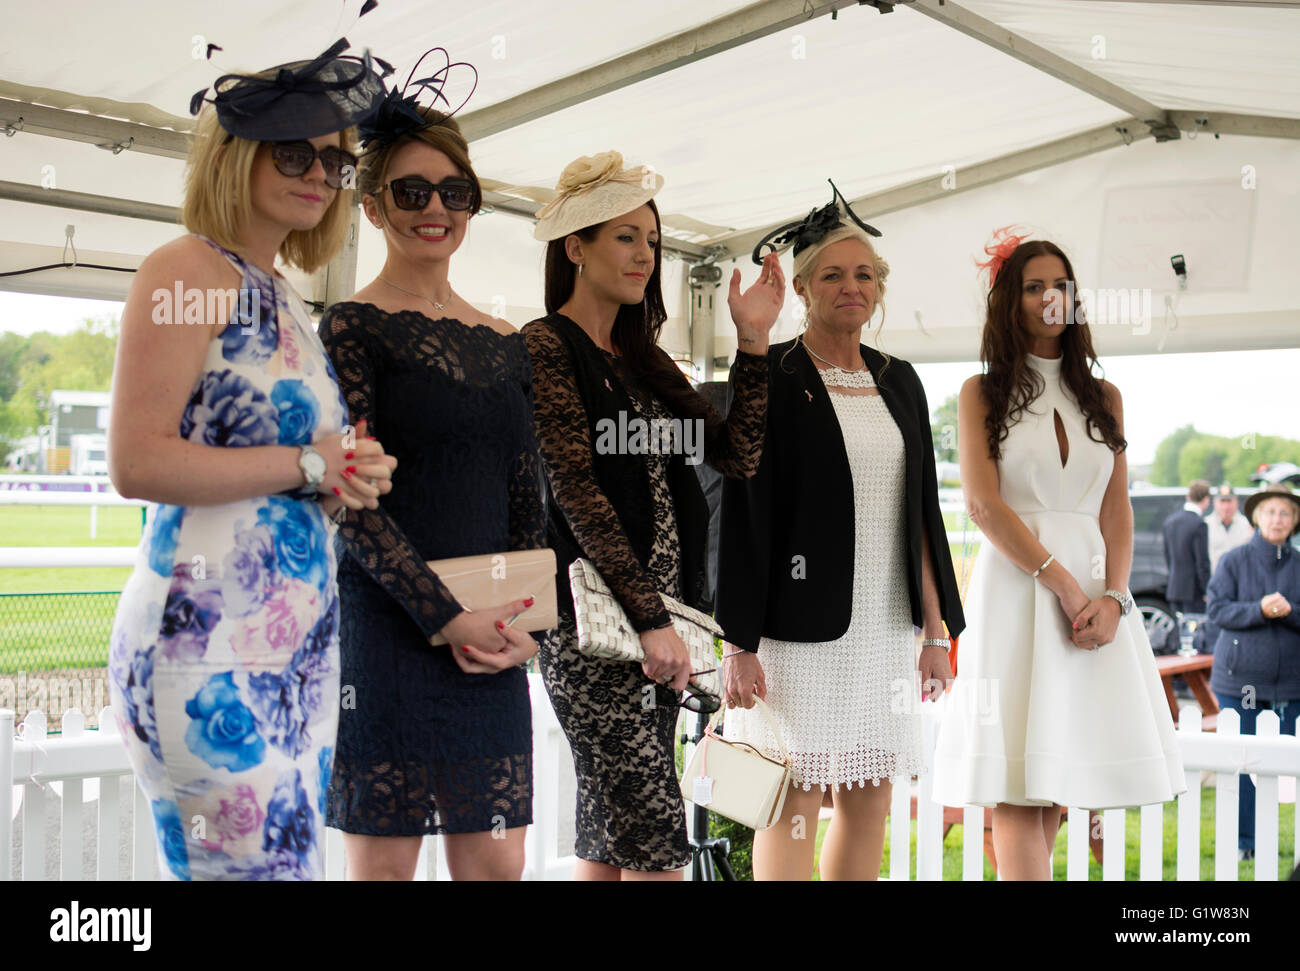 Women in best dressed lady competition at Warwick Races, UK - Stock Image